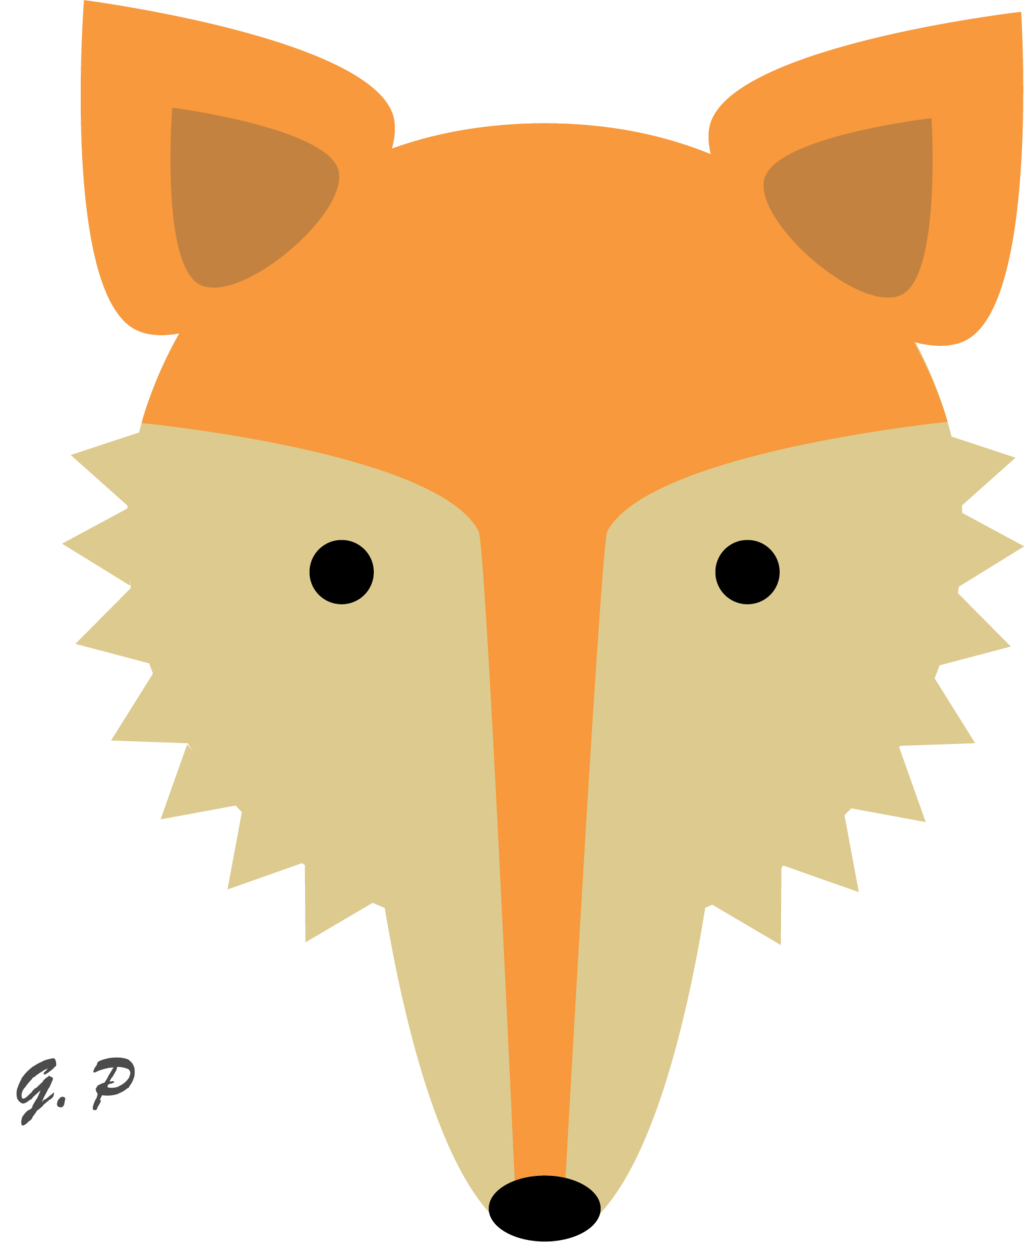 Free fox face cliparts. Indiana clipart simple